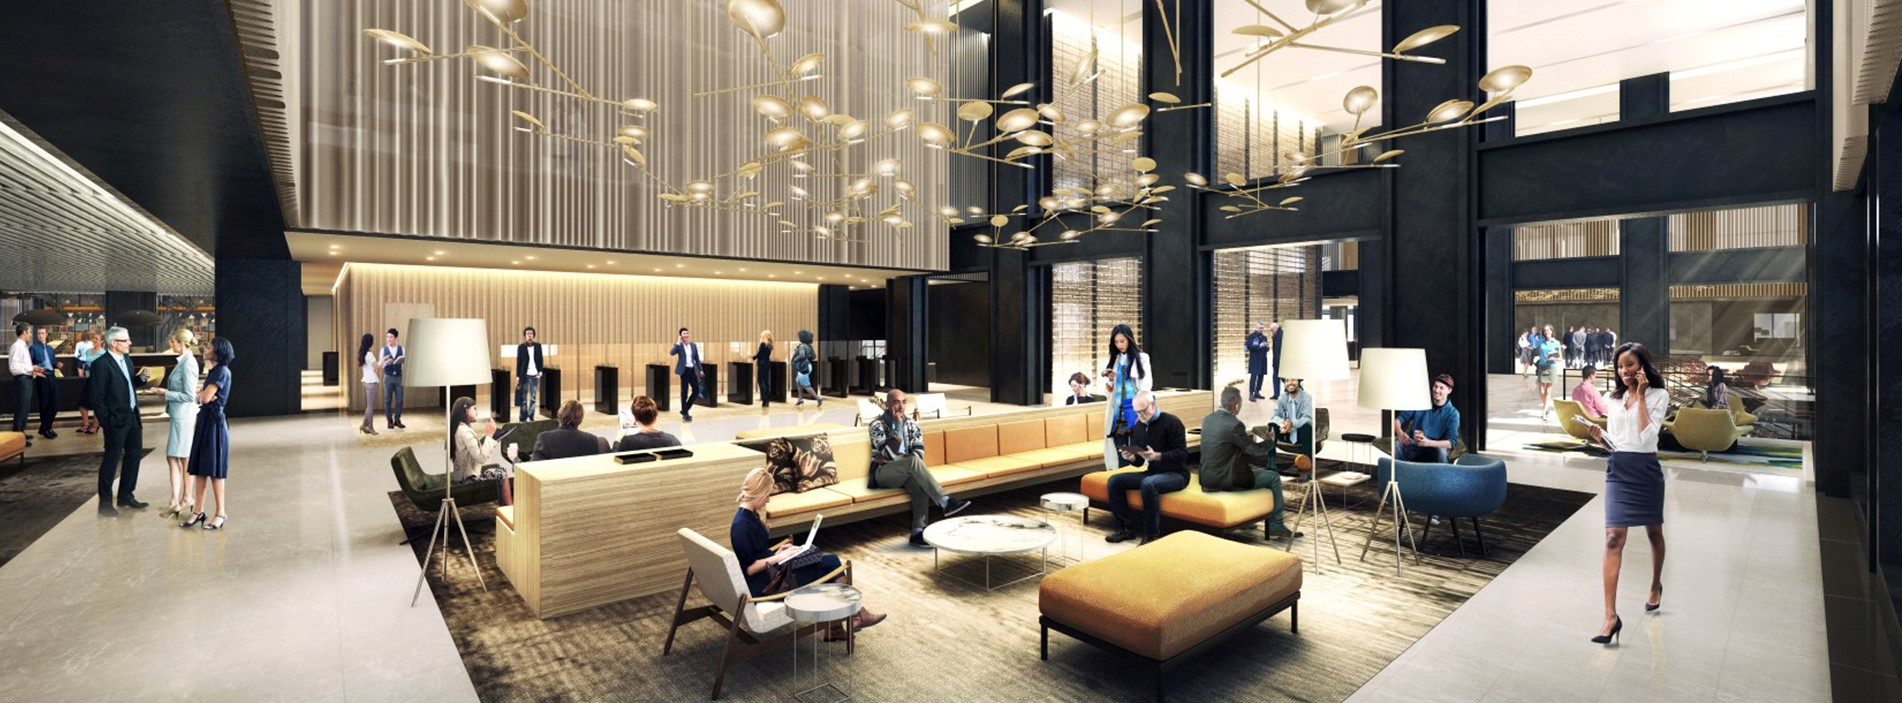 Reimagining an american icon willis tower for Floor and decor chicago